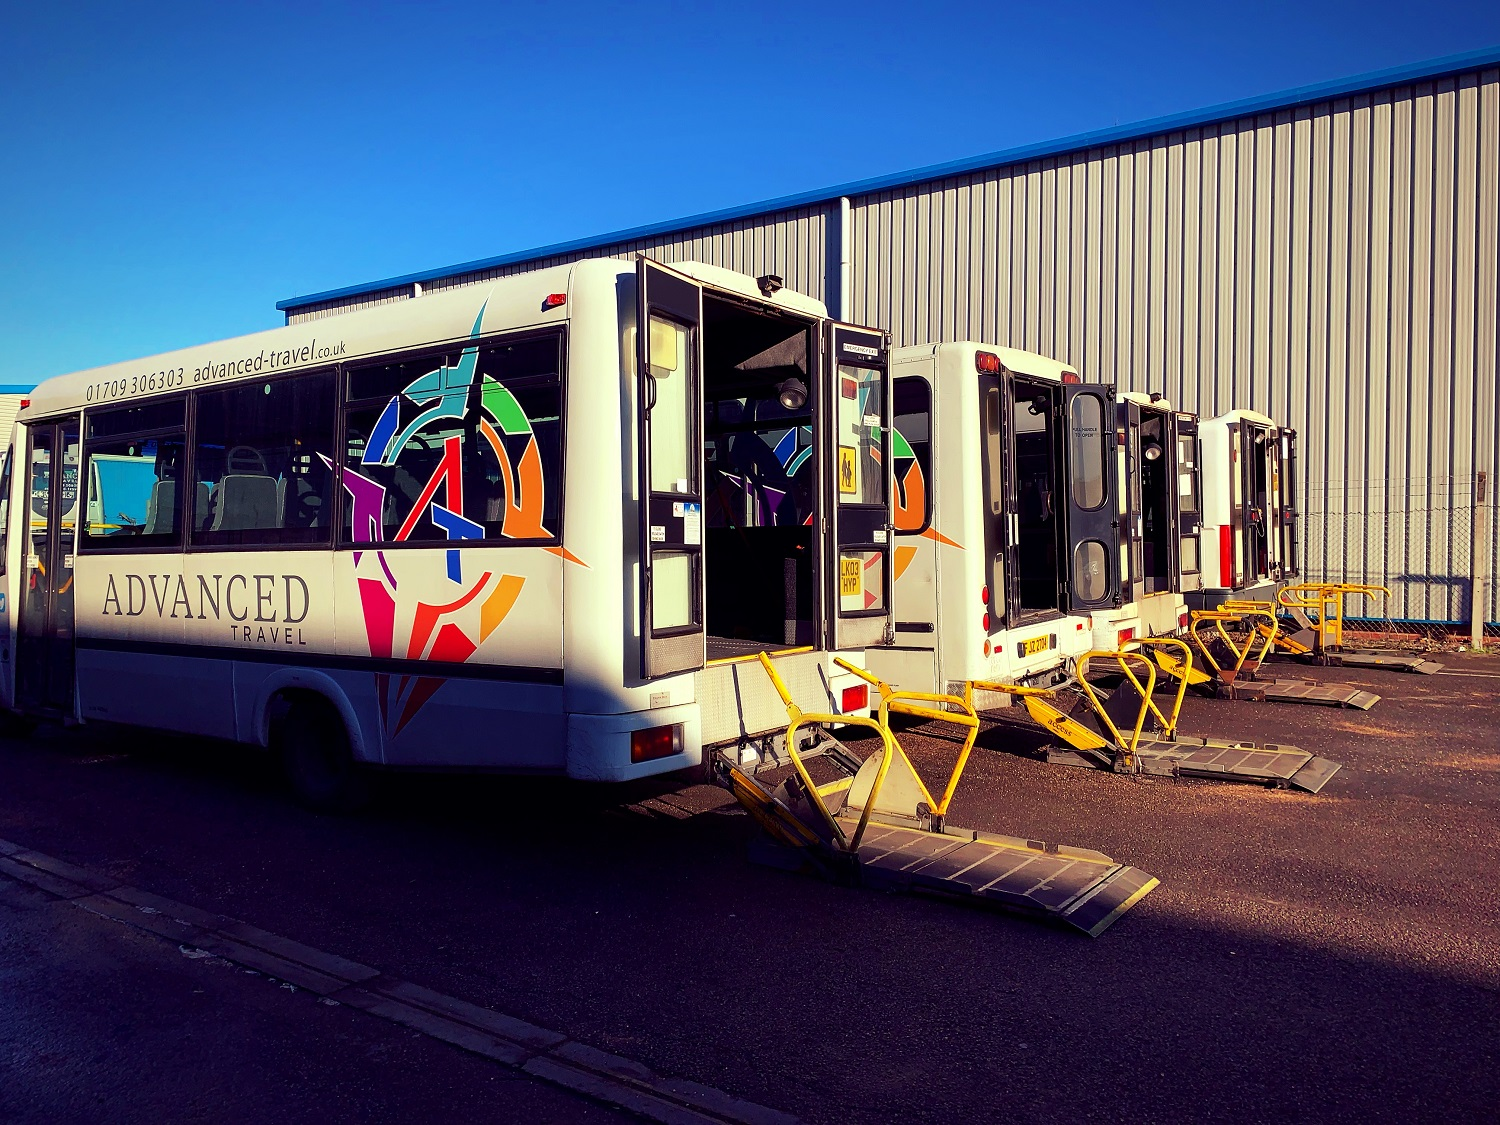 Four of our wheelchair accessible minibuses, shown from the back with their tail-lifts out and ready to take on passengers.